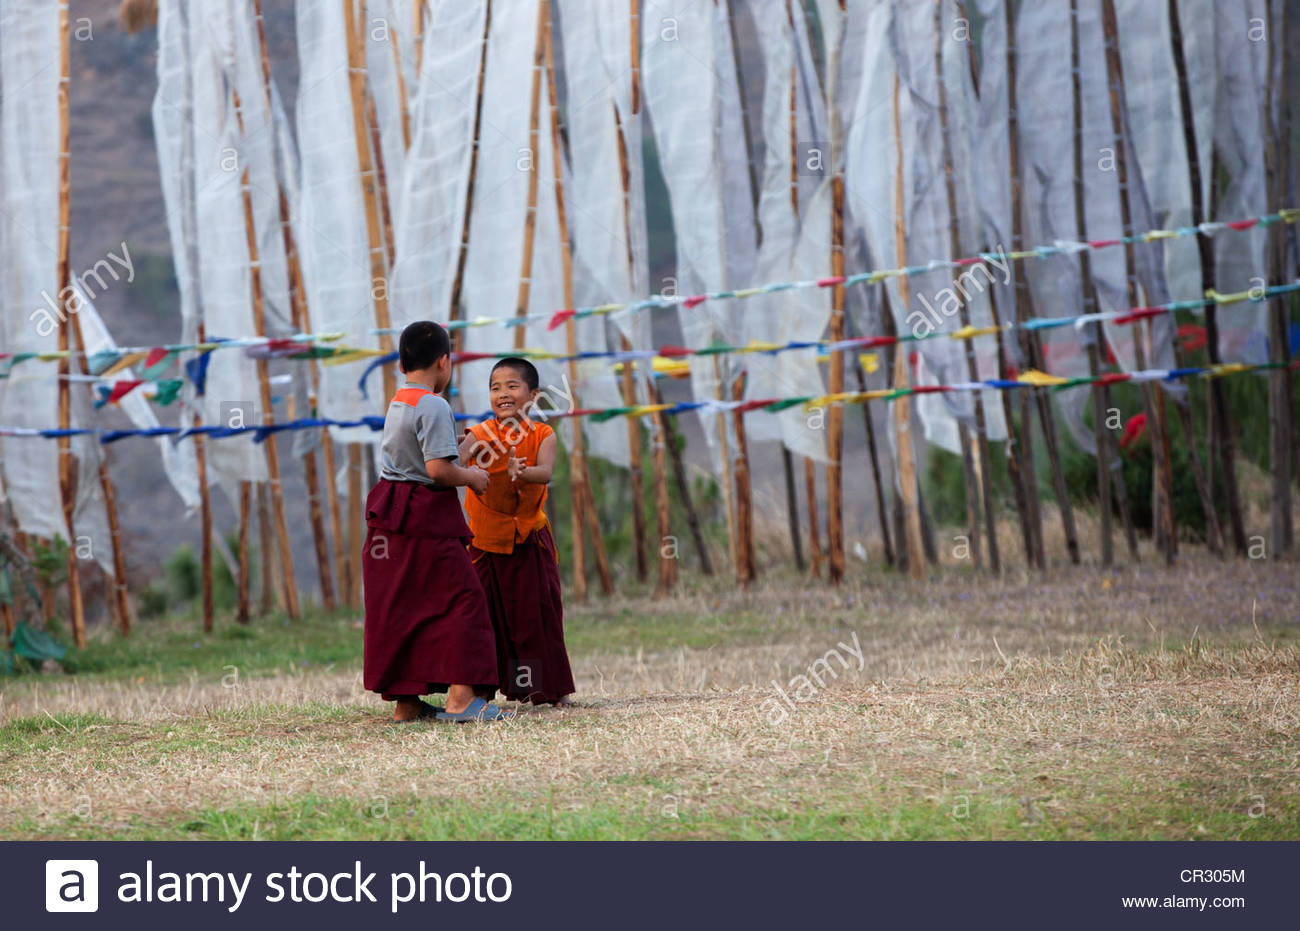 Young monks at play at Chimi Lhakhang or fertility temple in Lobesa Village, Punakha, Bhutan. - Stock Image